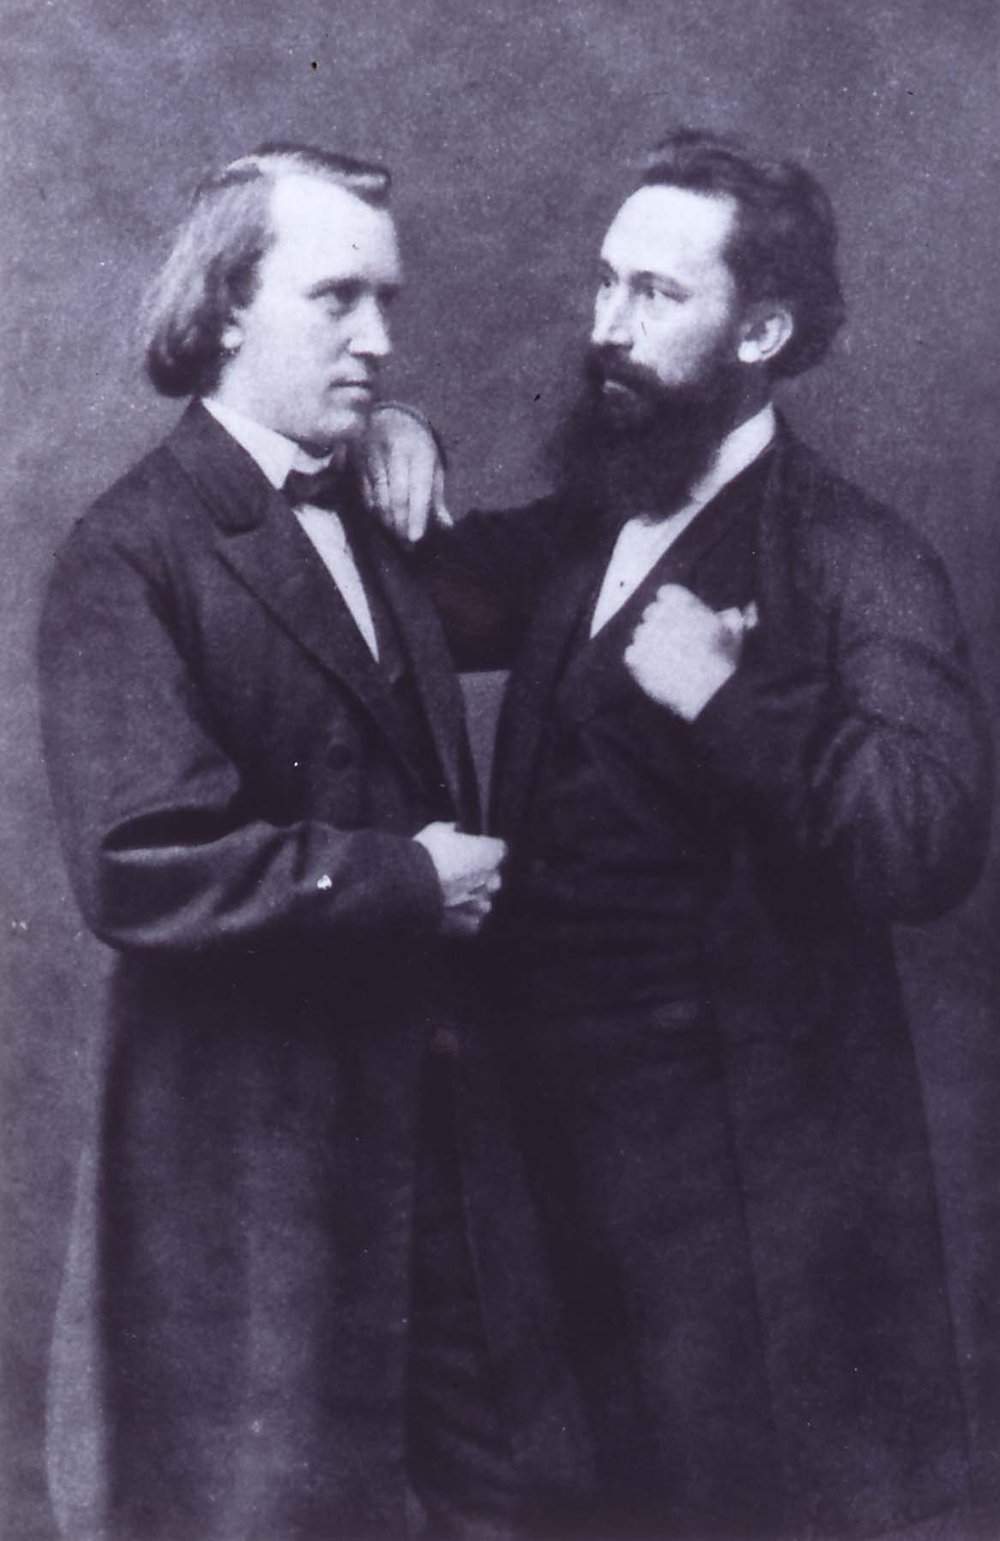 Johannes Brahms & his friend Julius Stockhausen circa 1870.   Stockhausen performed as the baritone soloist in both the successful 1868 performance of  Ein deutchses Requiem  in Bremen (in German) and in the 1871 London performance (in English).   Stockhausen also was appointed music director of the Hamburg Philharmonic over Brahms.